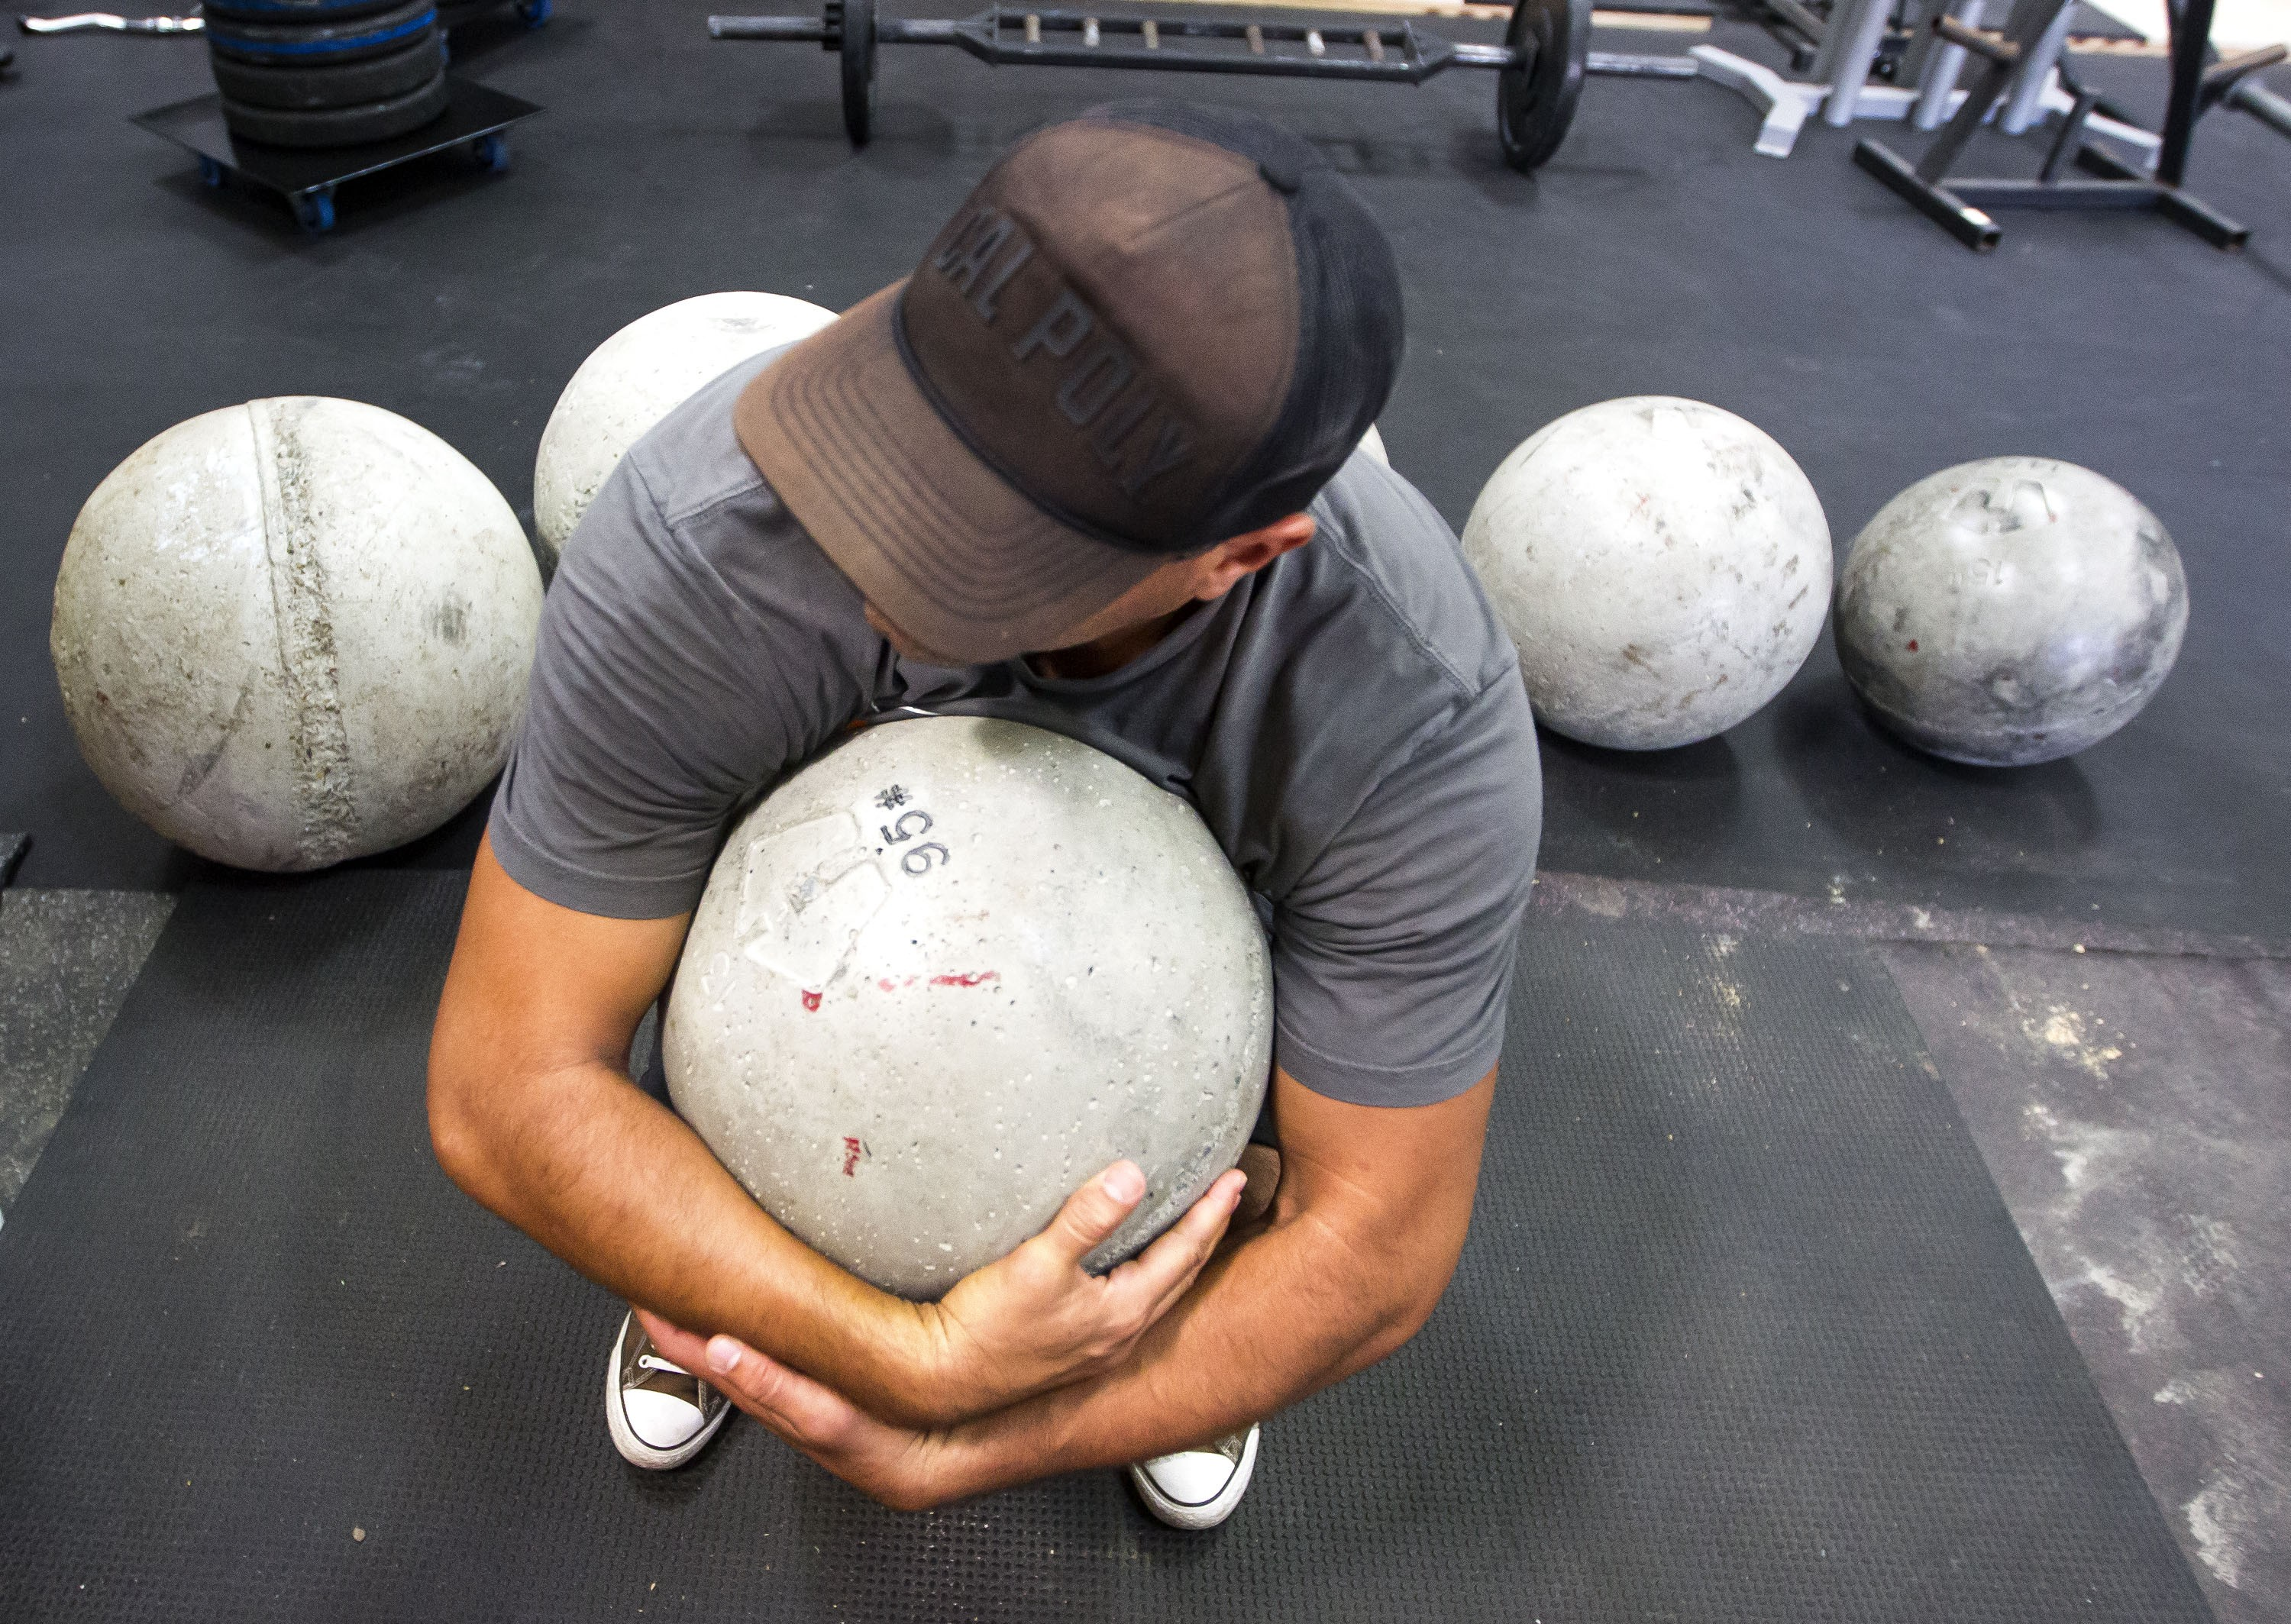 Pumping iron, rocks, and tires | News | San Luis Obispo